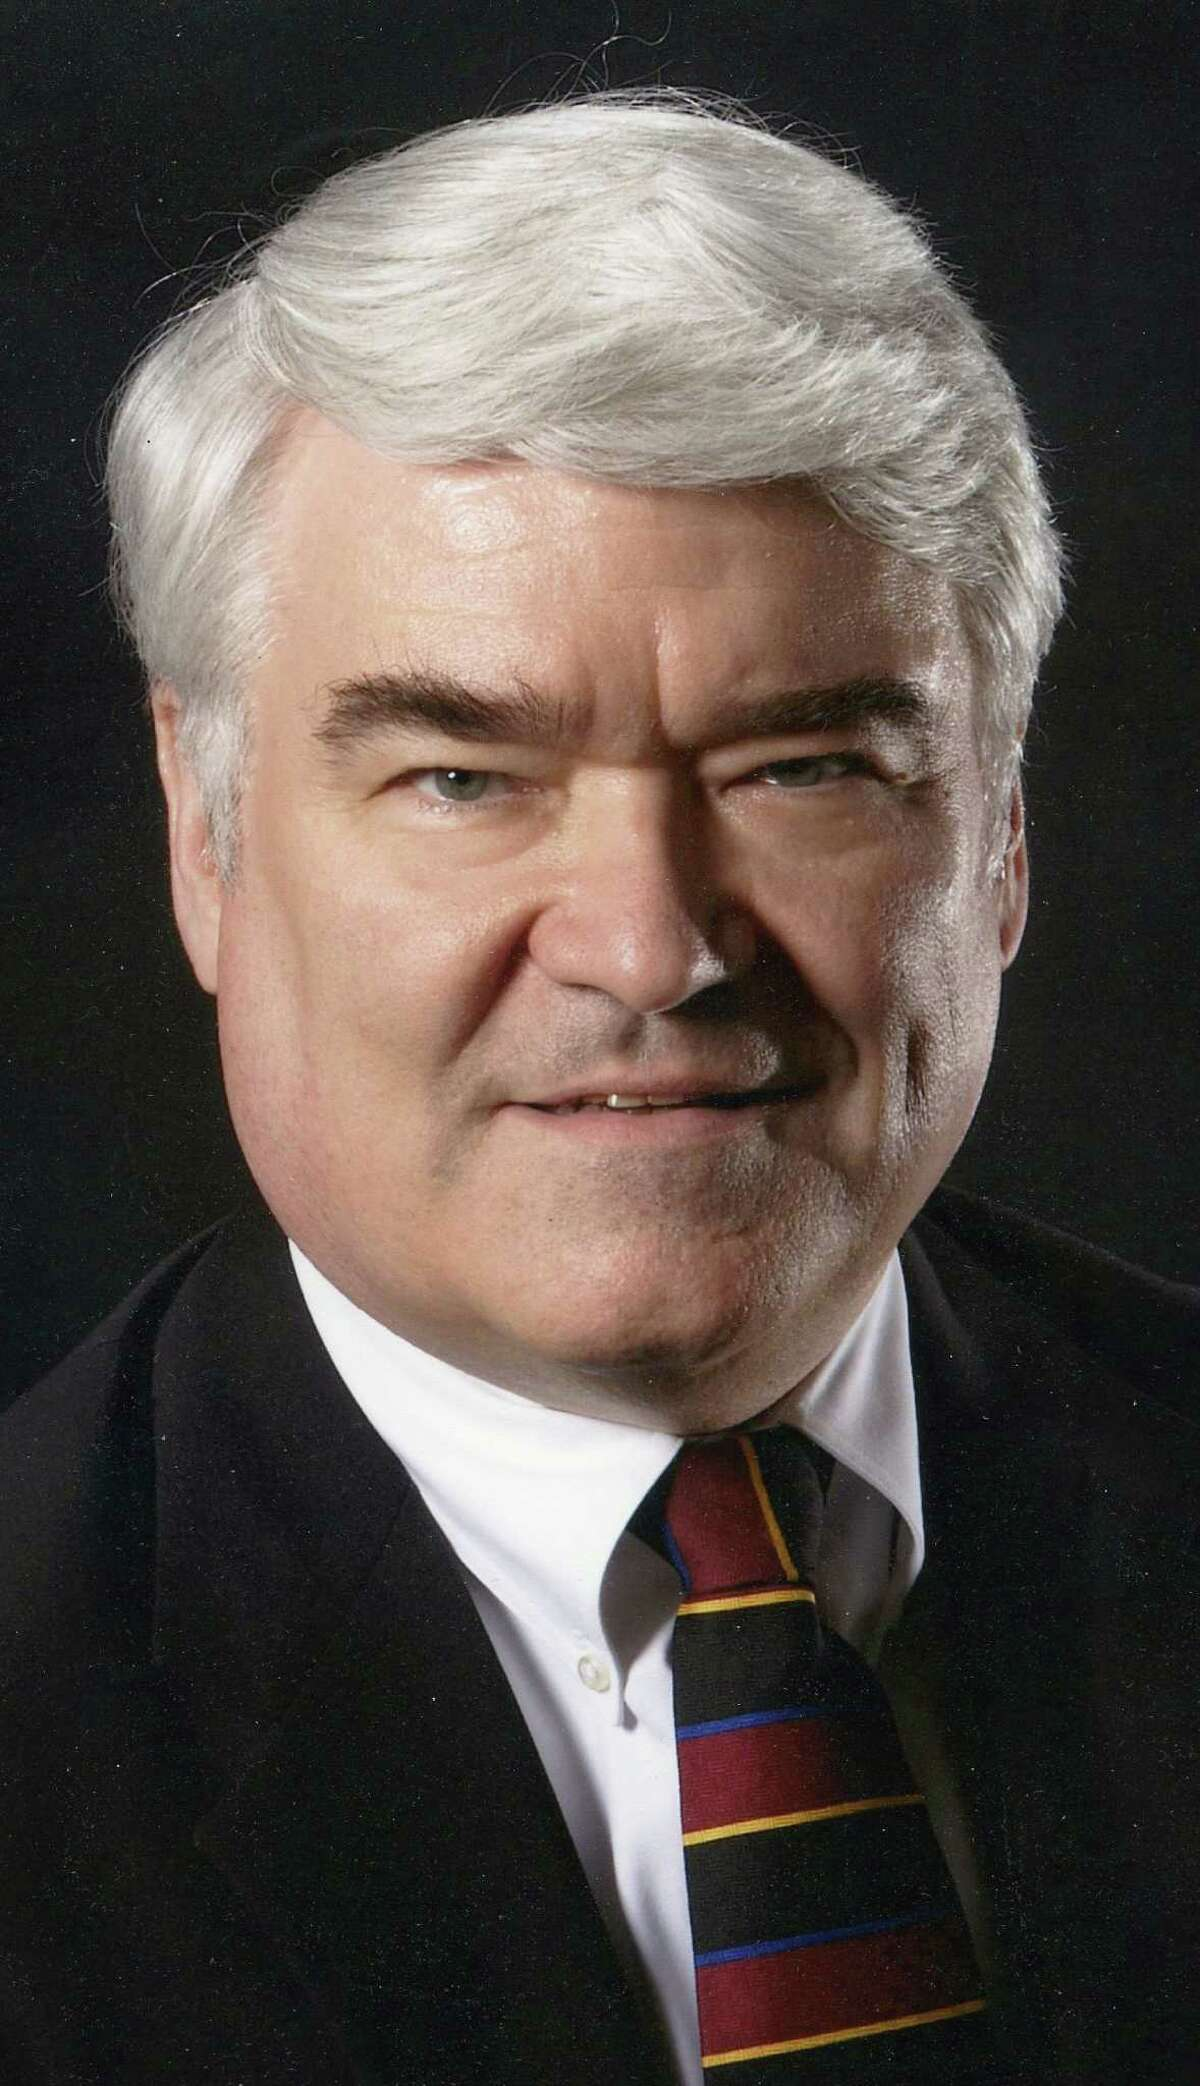 Chief Justice Nathan Hecht was fined in 2008 for breaking campaign finance laws.